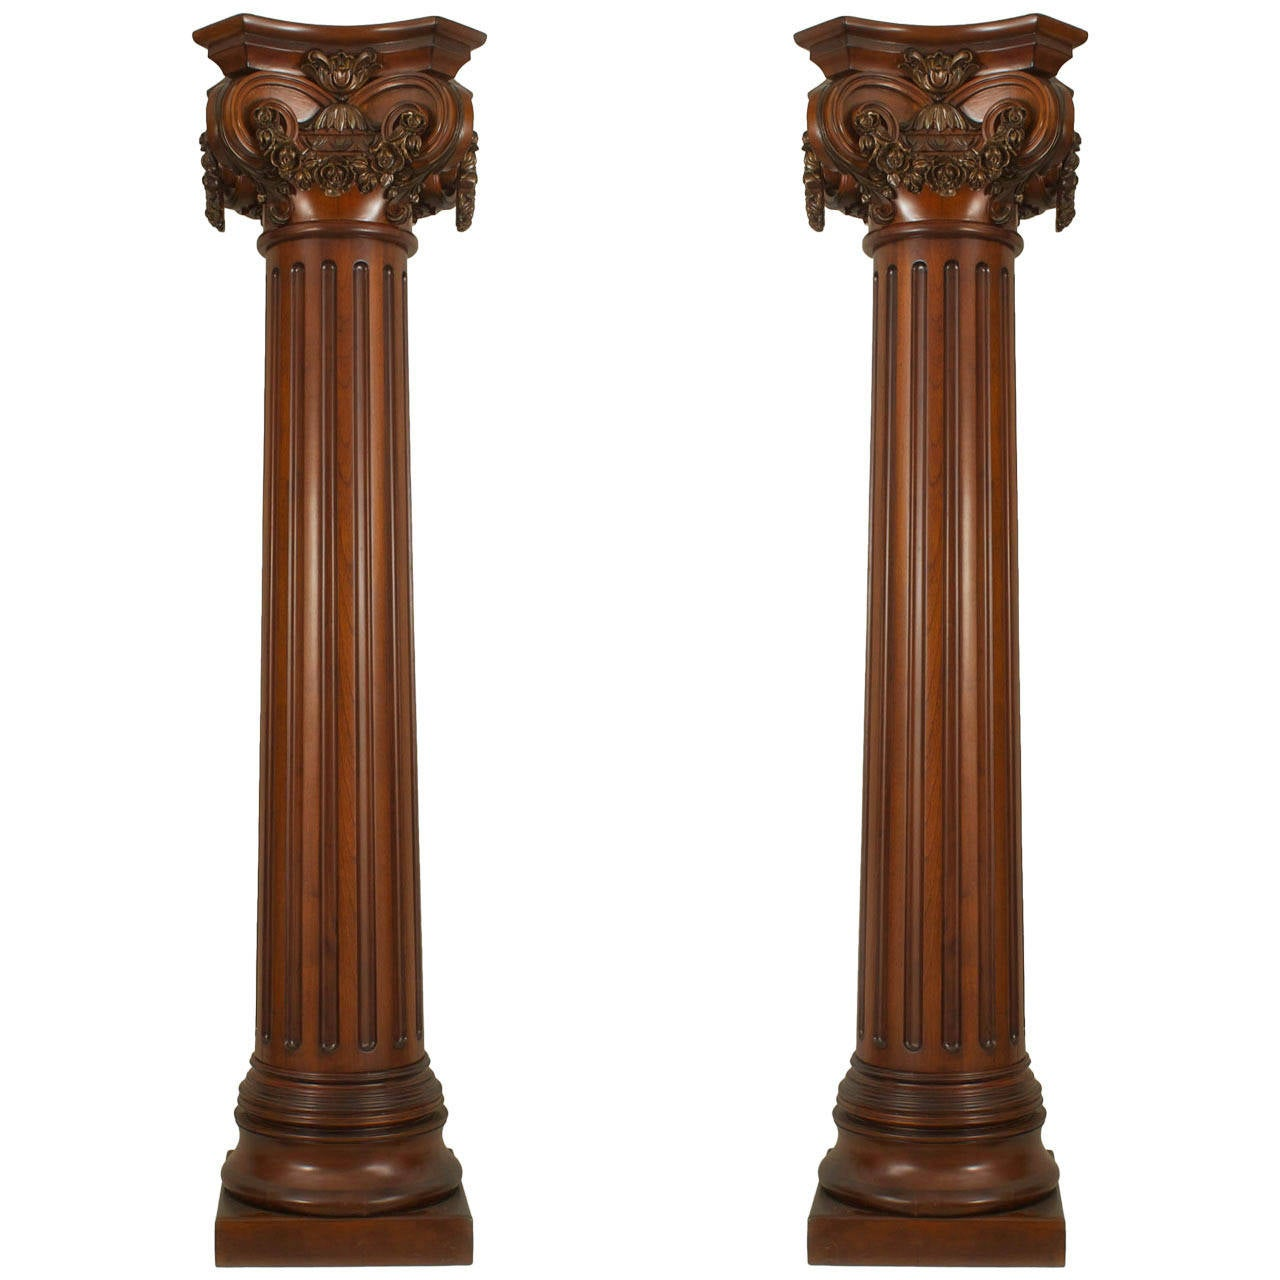 Columns For Sale >> English Georgian Style Fluted Mahogany Columns For Sale At 1stdibs